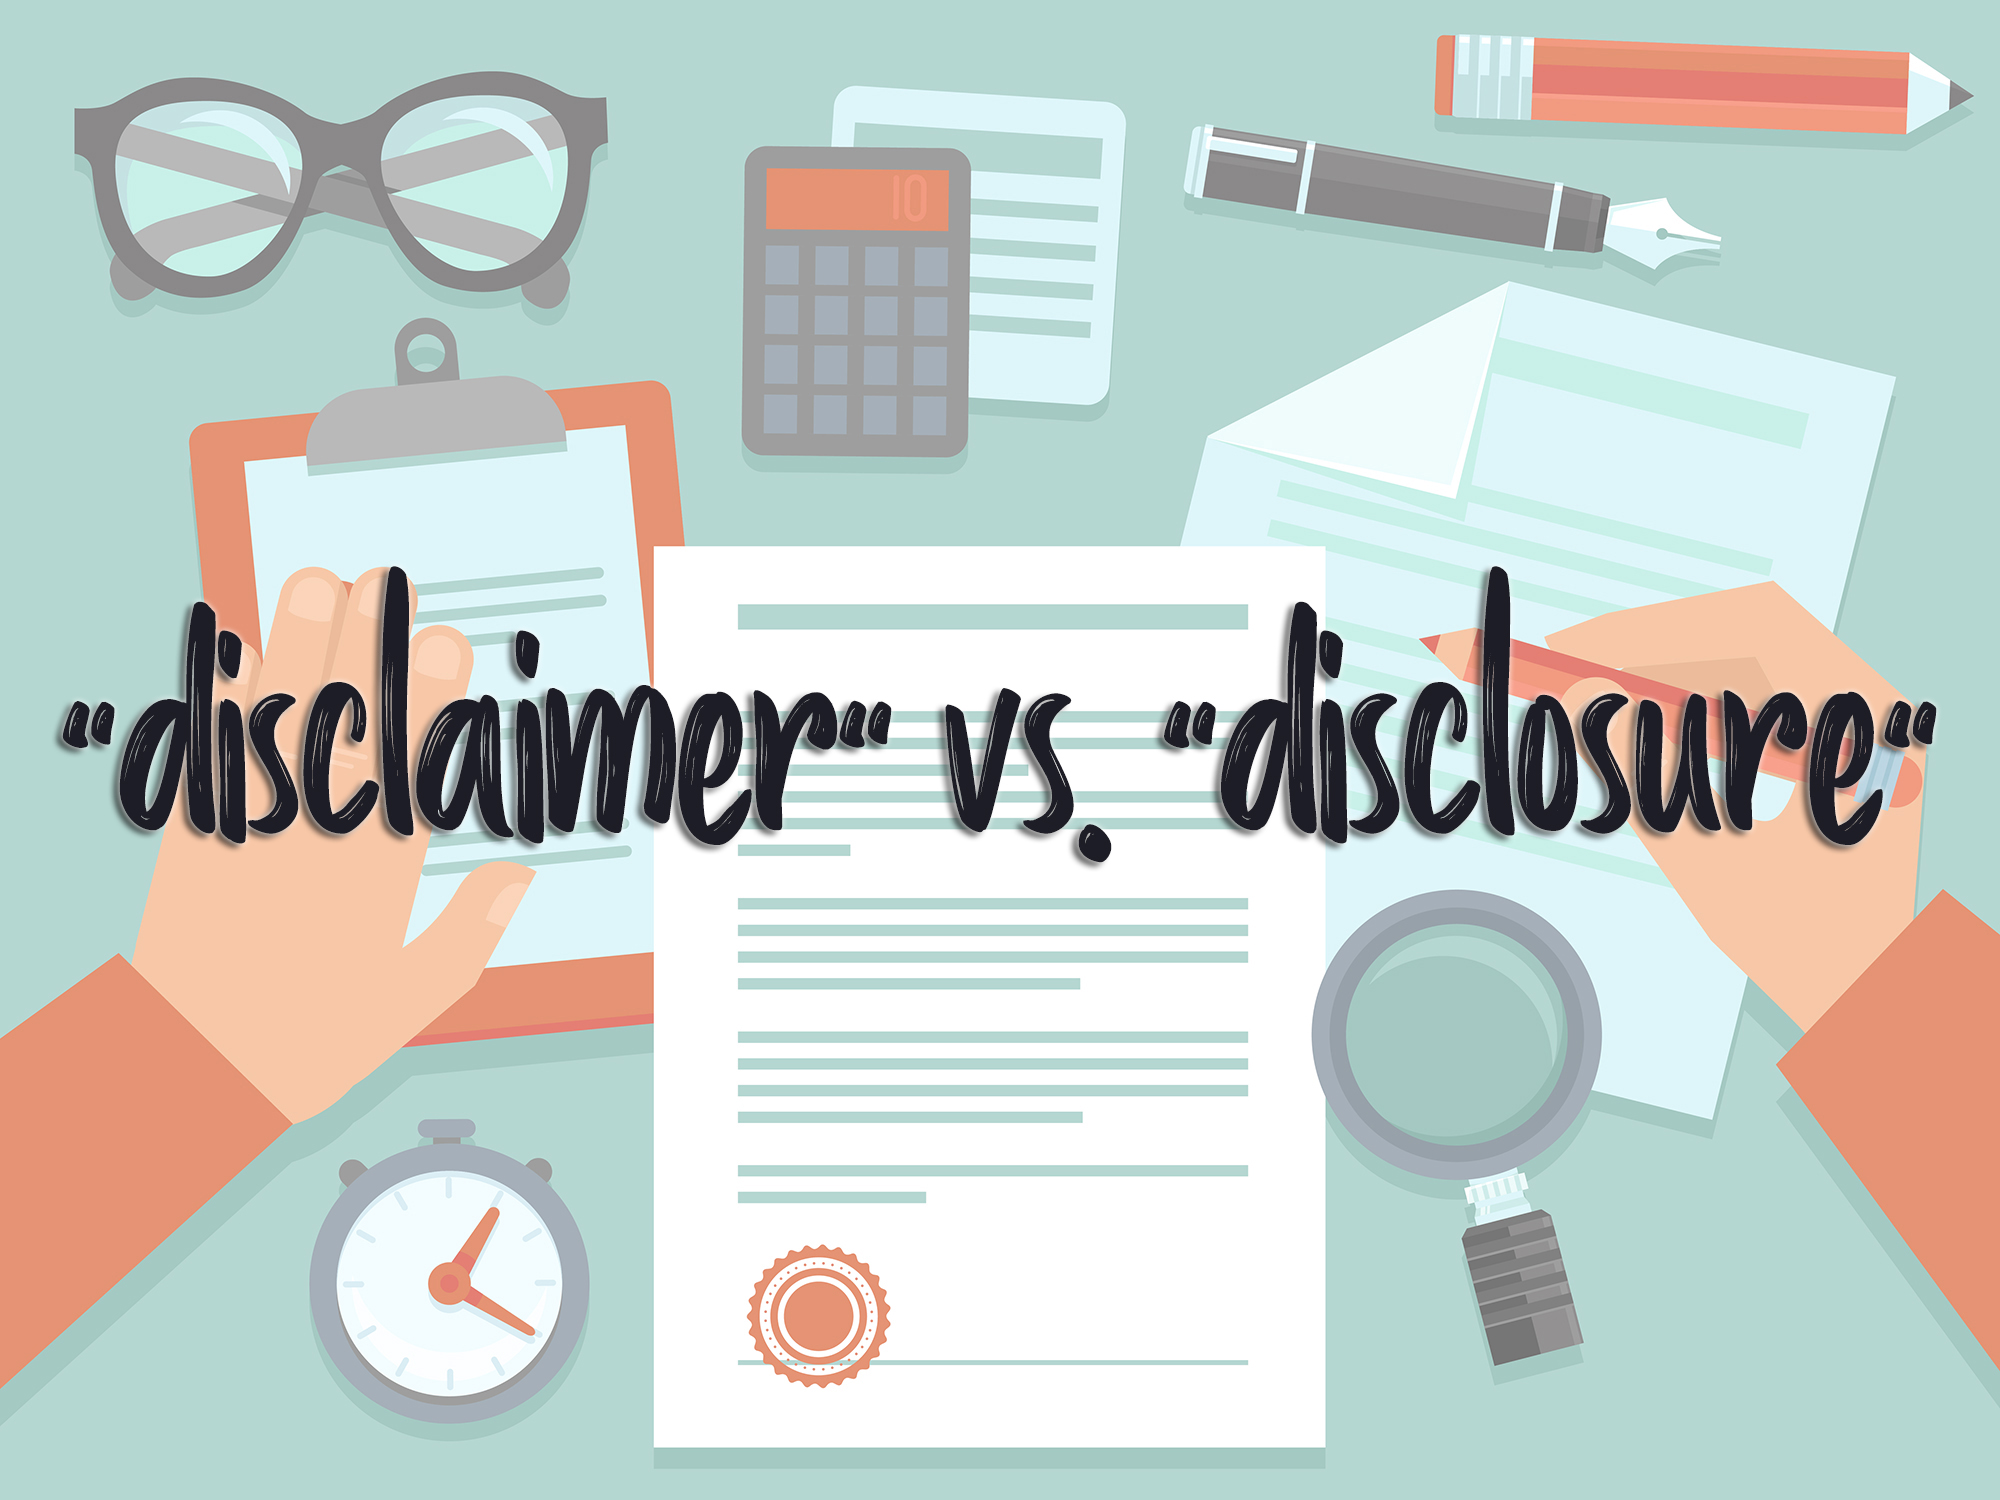 Disclaimer vs. Disclosure